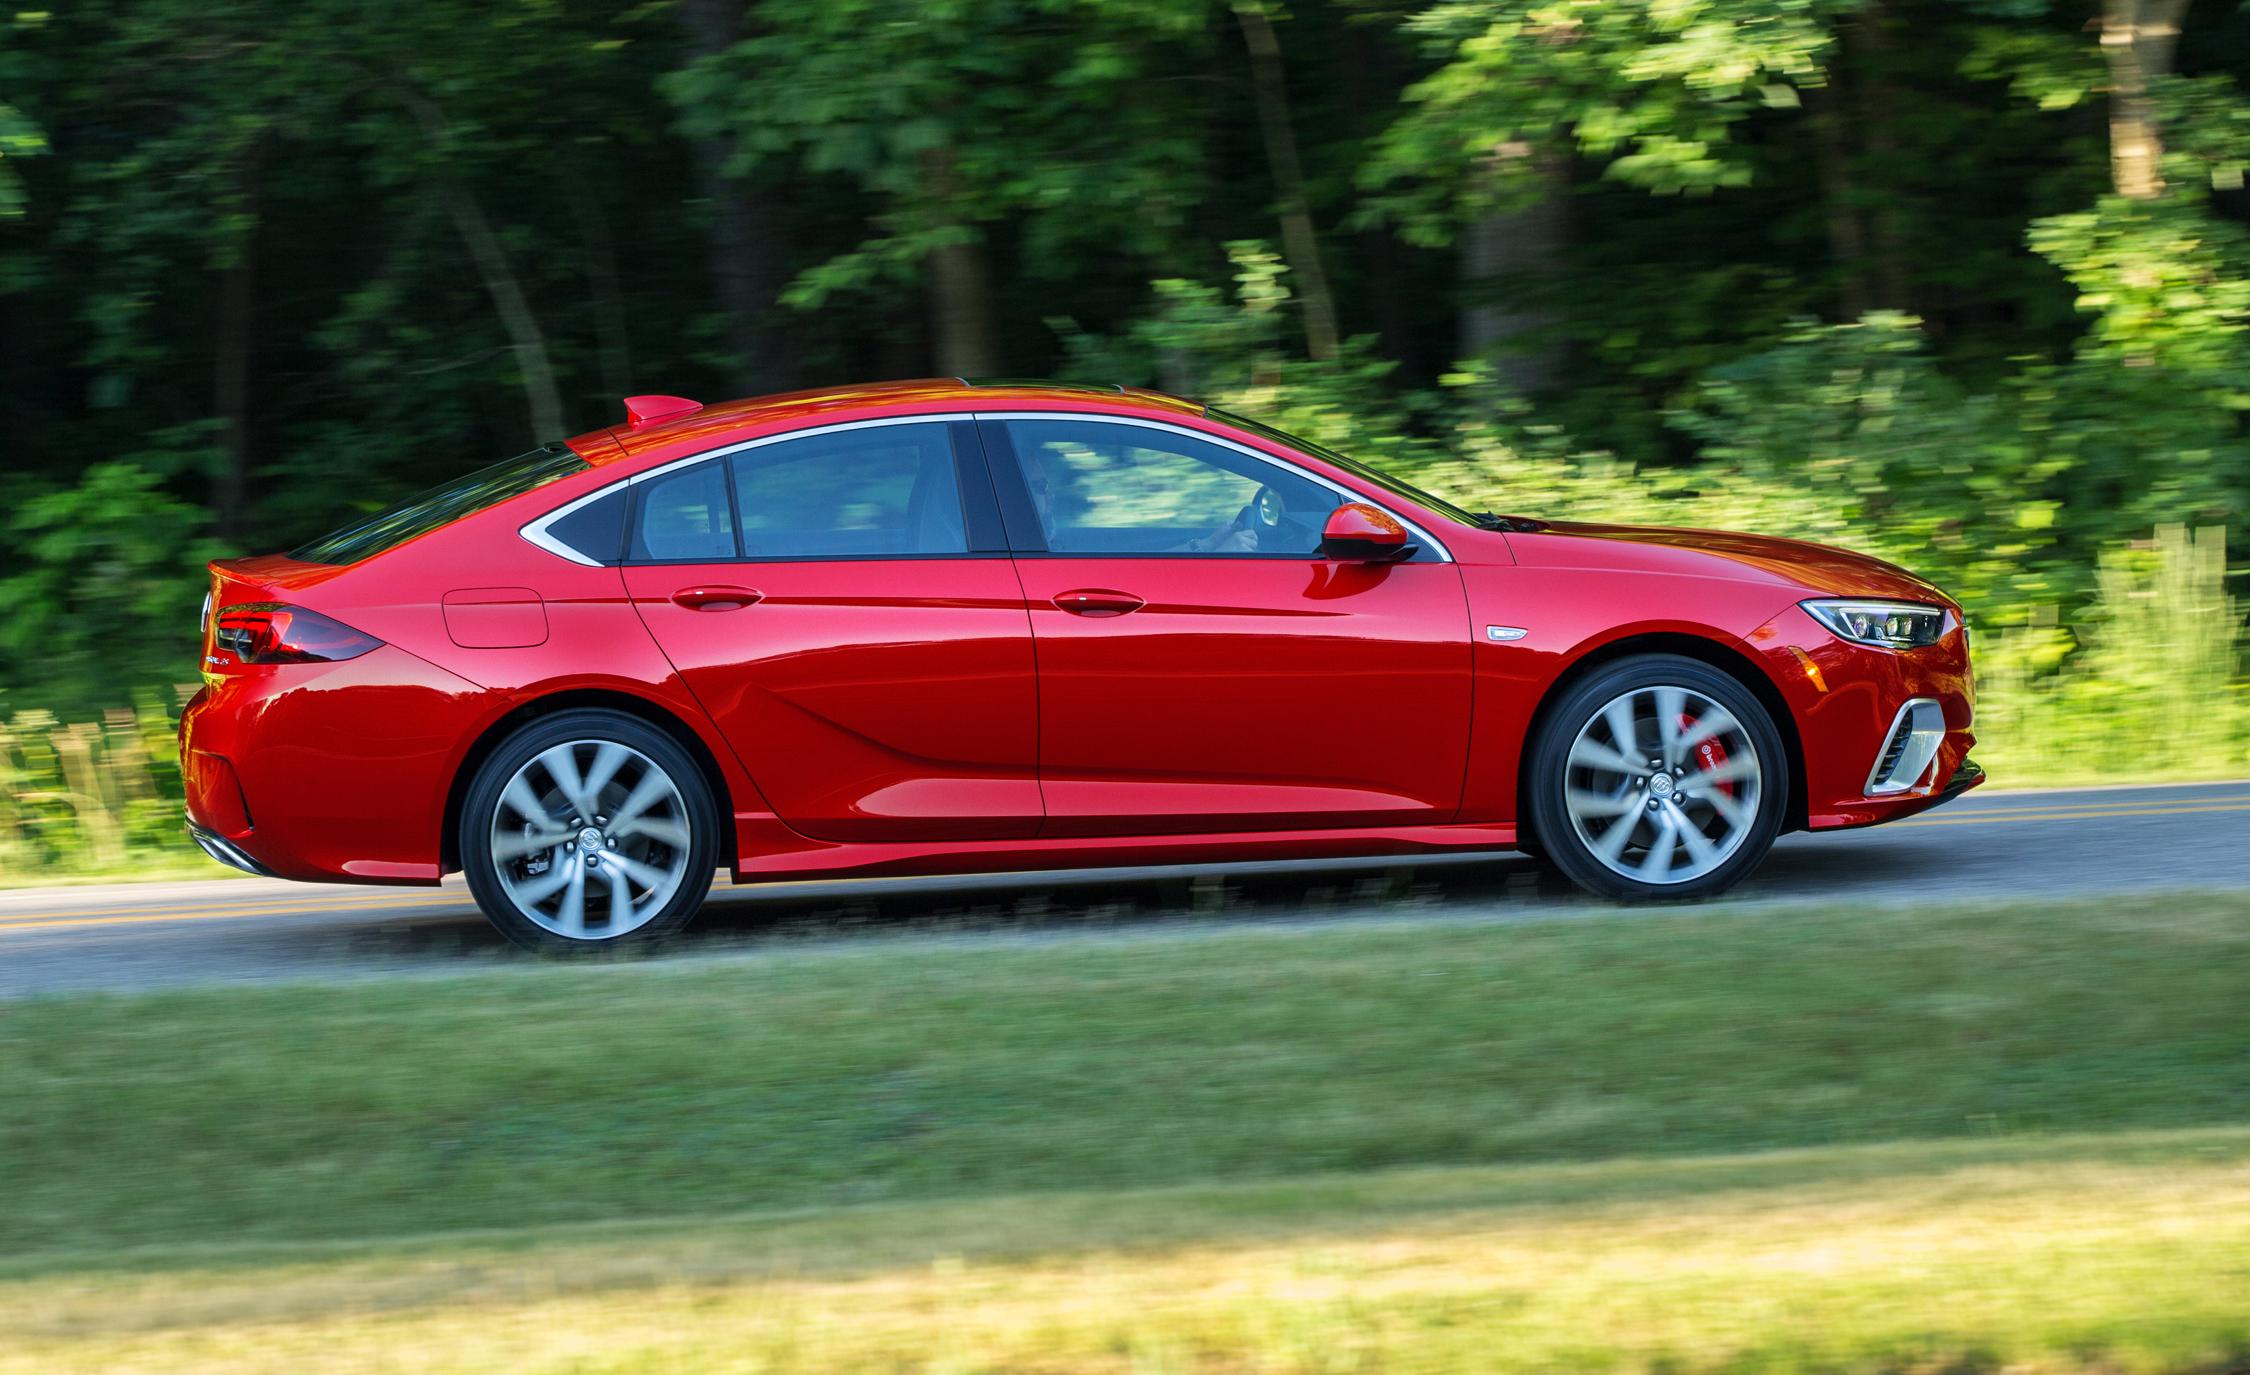 2018 Buick Regal GS: Gorgeous Sport